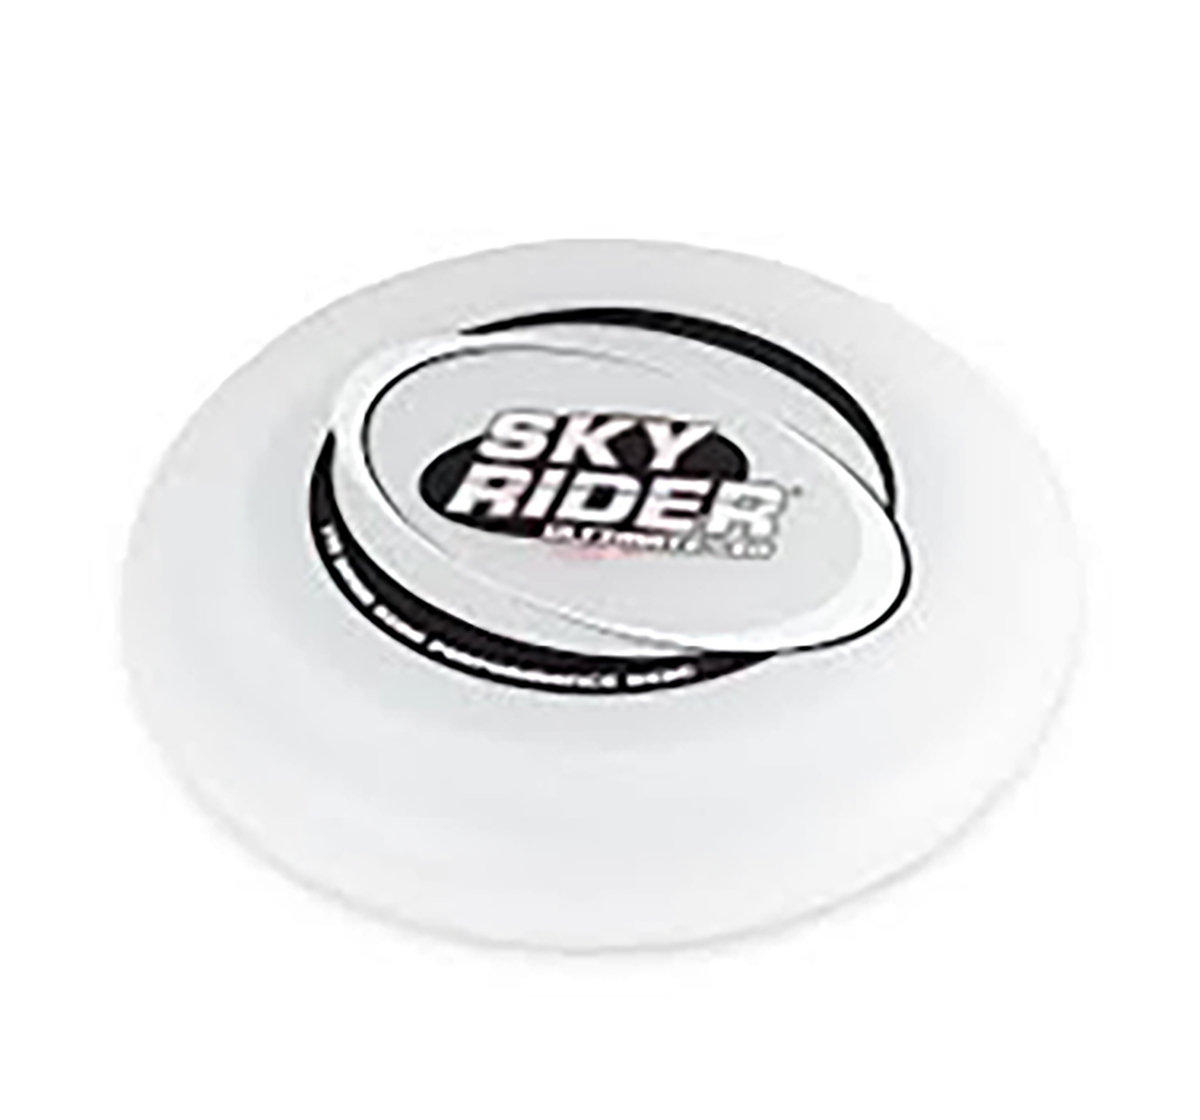 Wicked | Wicked Sky Rider Ultimate LED Frisbee  Outdoor Sports for Kids age 3Y+ (White)